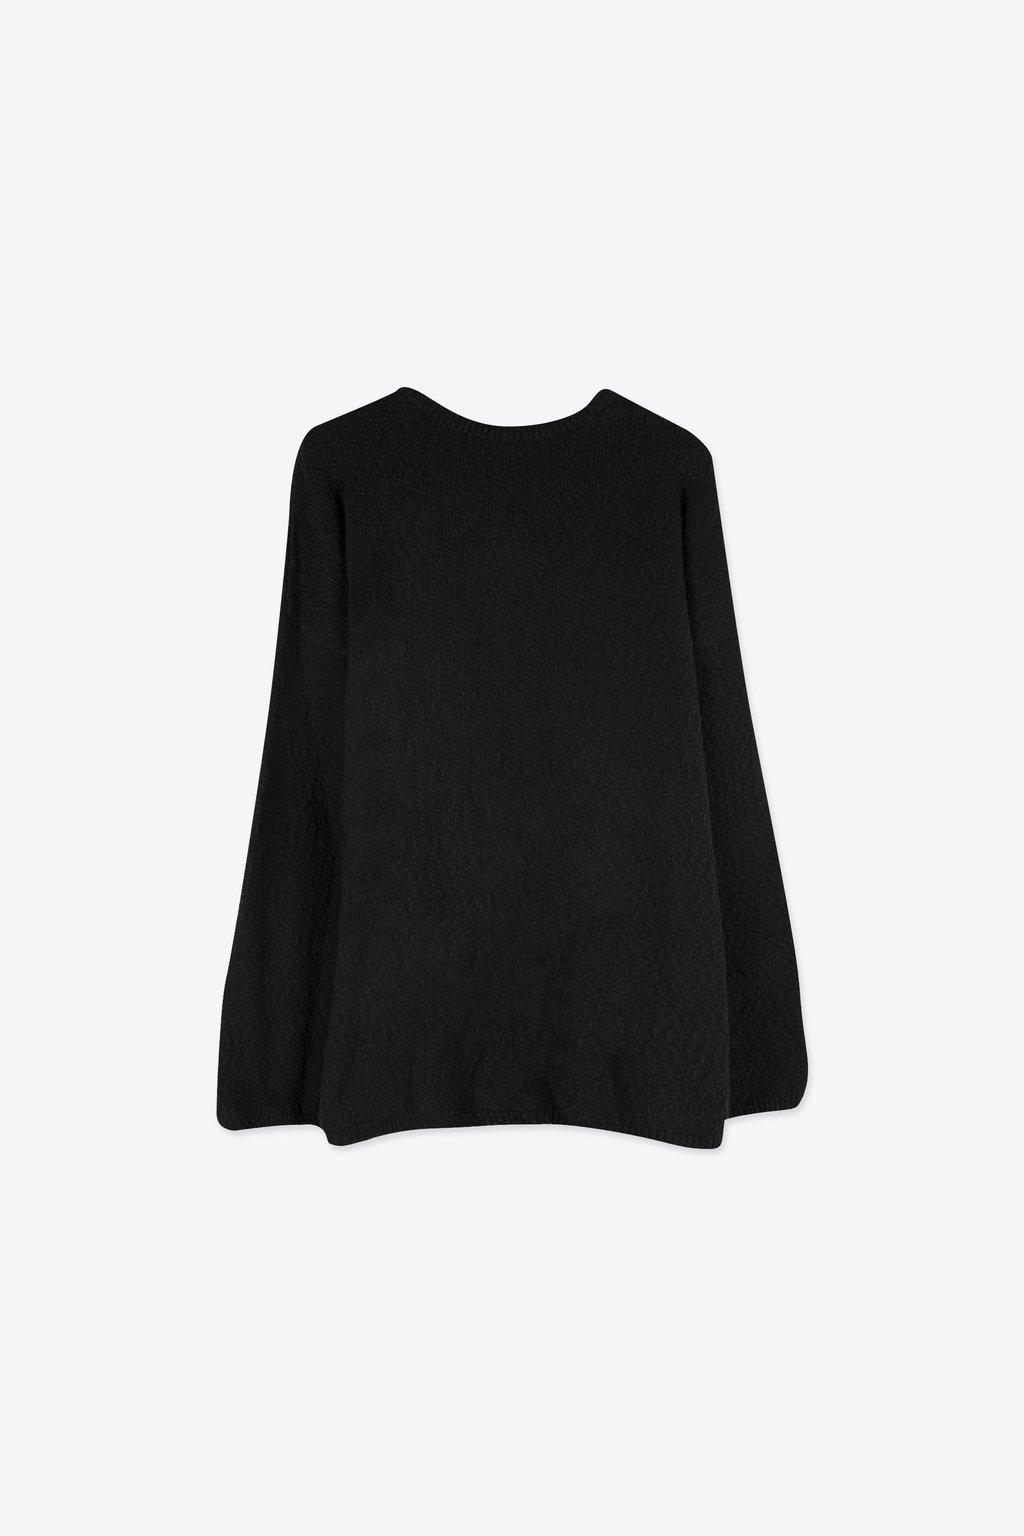 Sweater 1094 Black 6